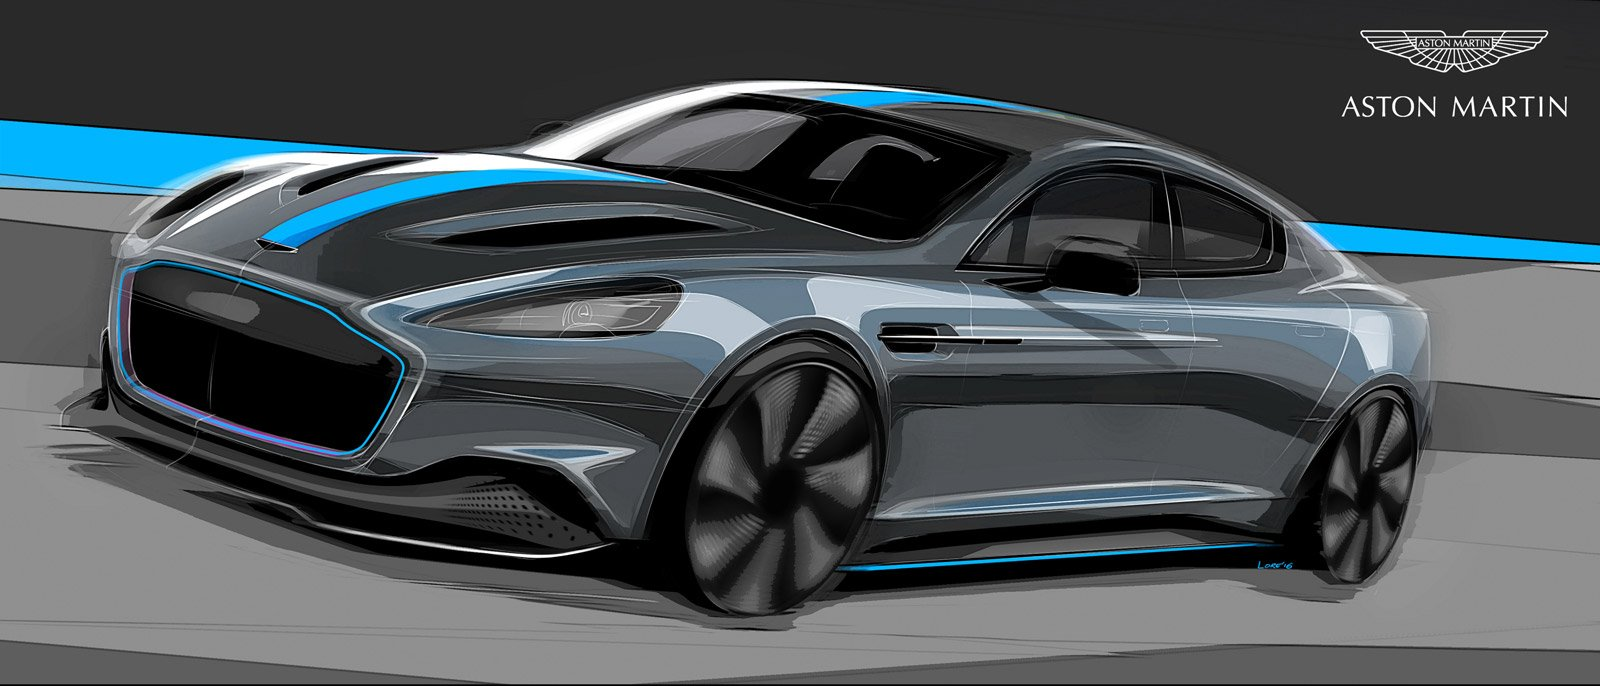 Aston Martin Is Building Its First All-Electric Car